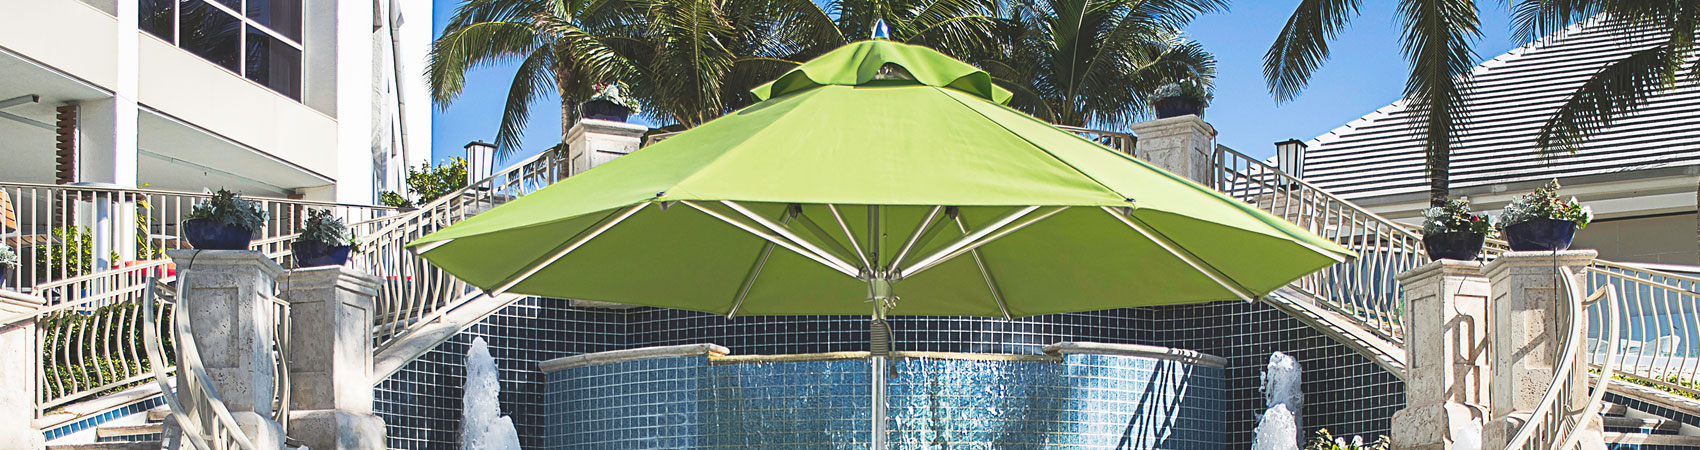 Green Frankford Greenwich Market Umbrella in a luxurious hospitality setting